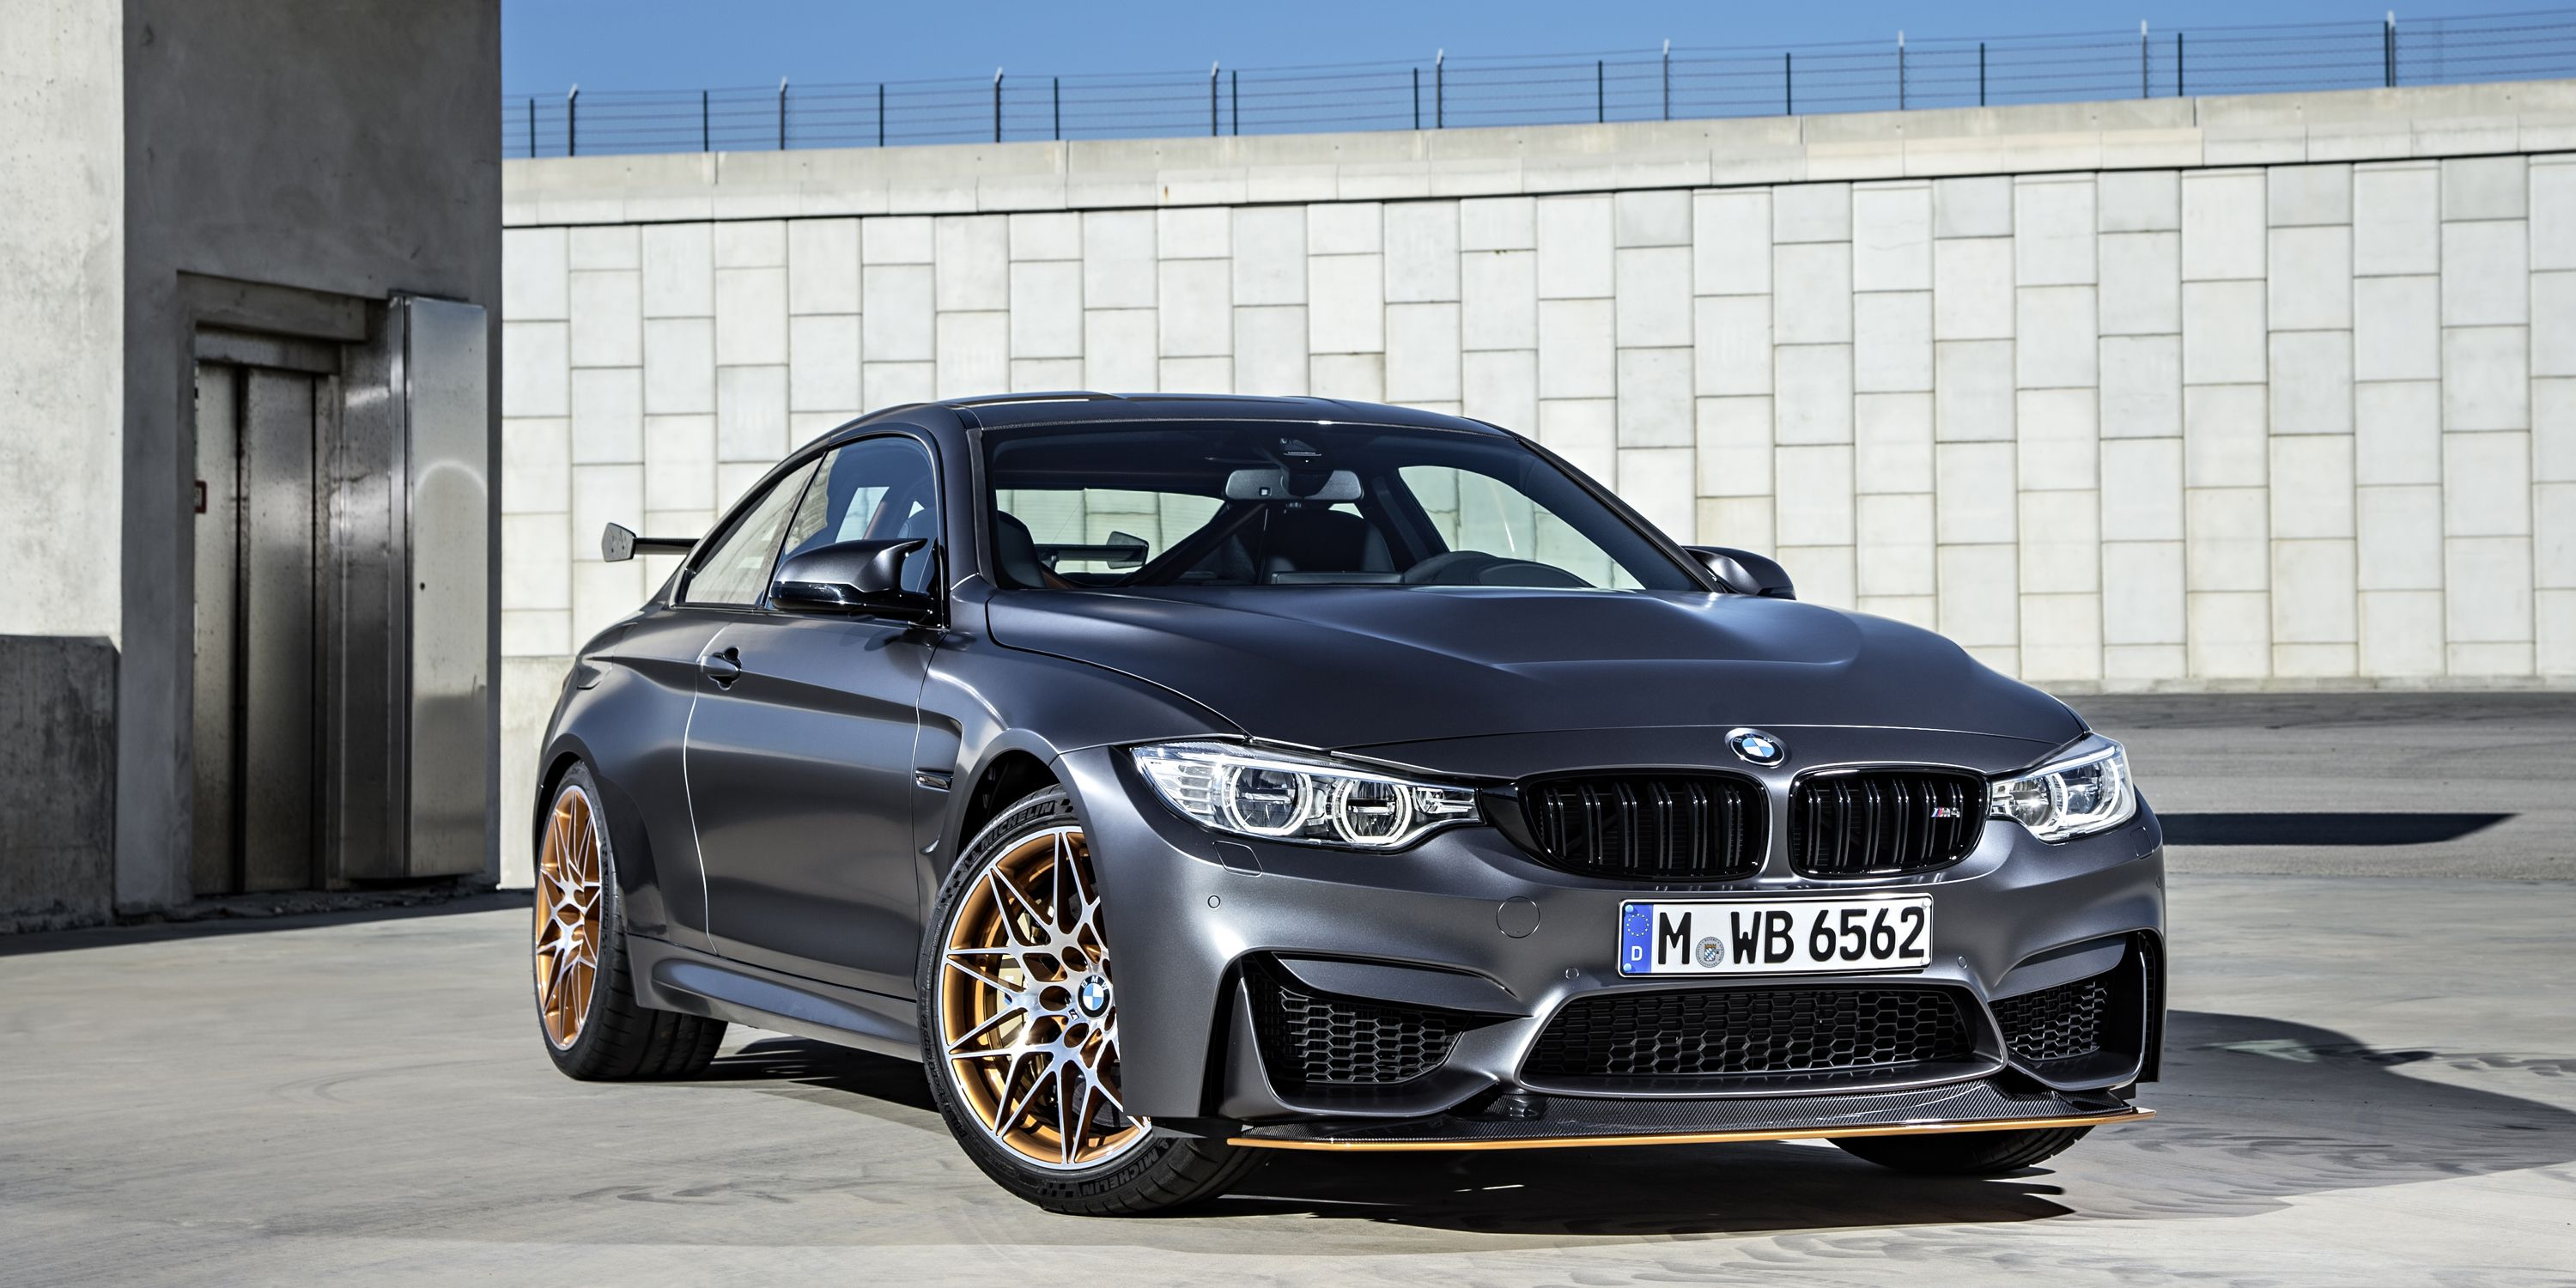 Watch The Bmw M4 Gts Lap The Nurburgring In A Ridiculously Fast 728